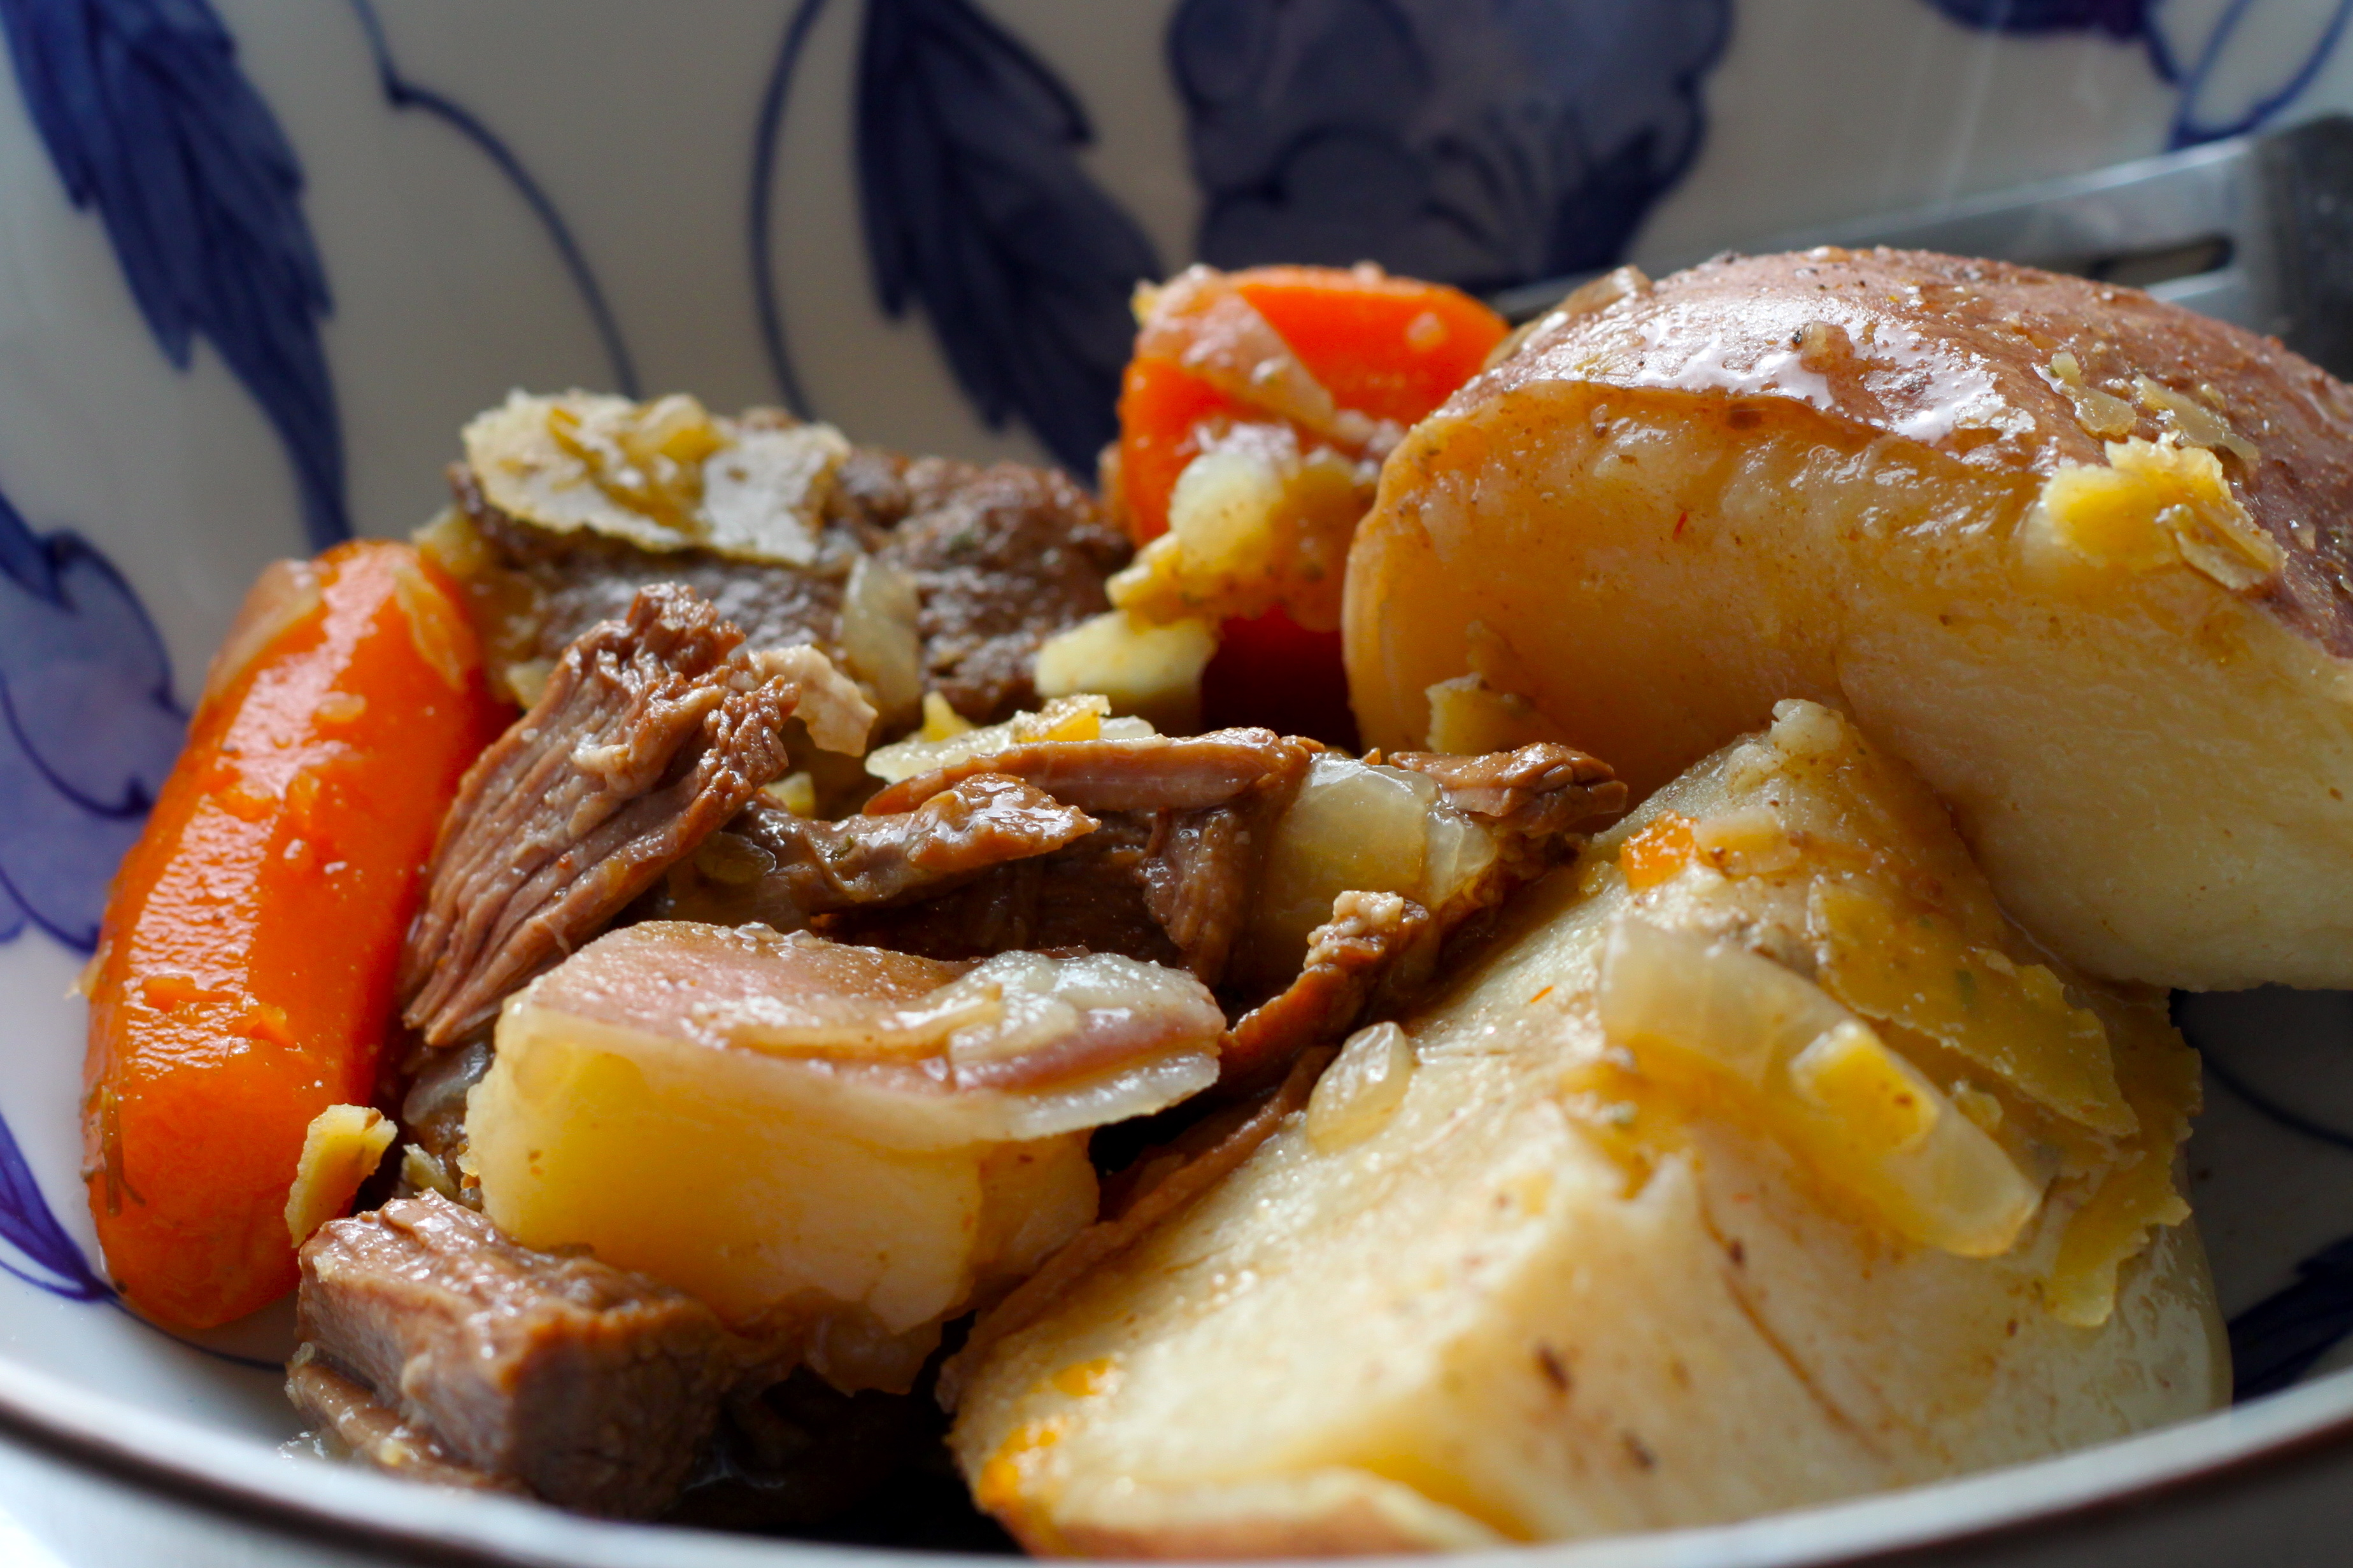 BEEF & BEER STEW (serves 2 with leftovers)